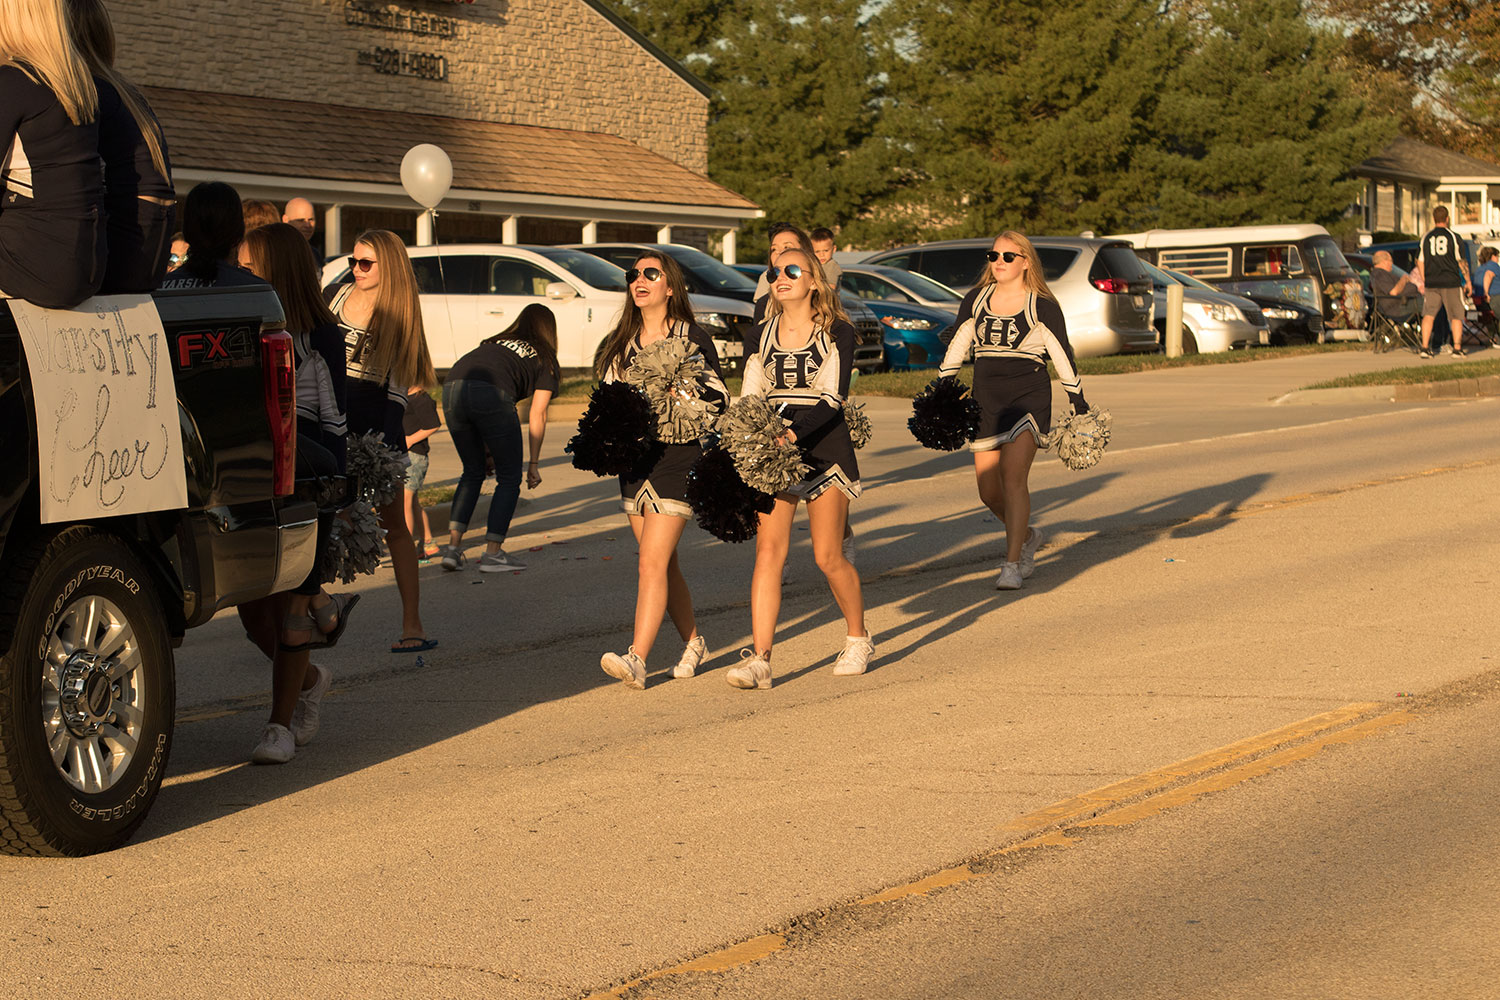 The varsity cheerleads walk at the homecoming parade showing their school spirit as they smile at children